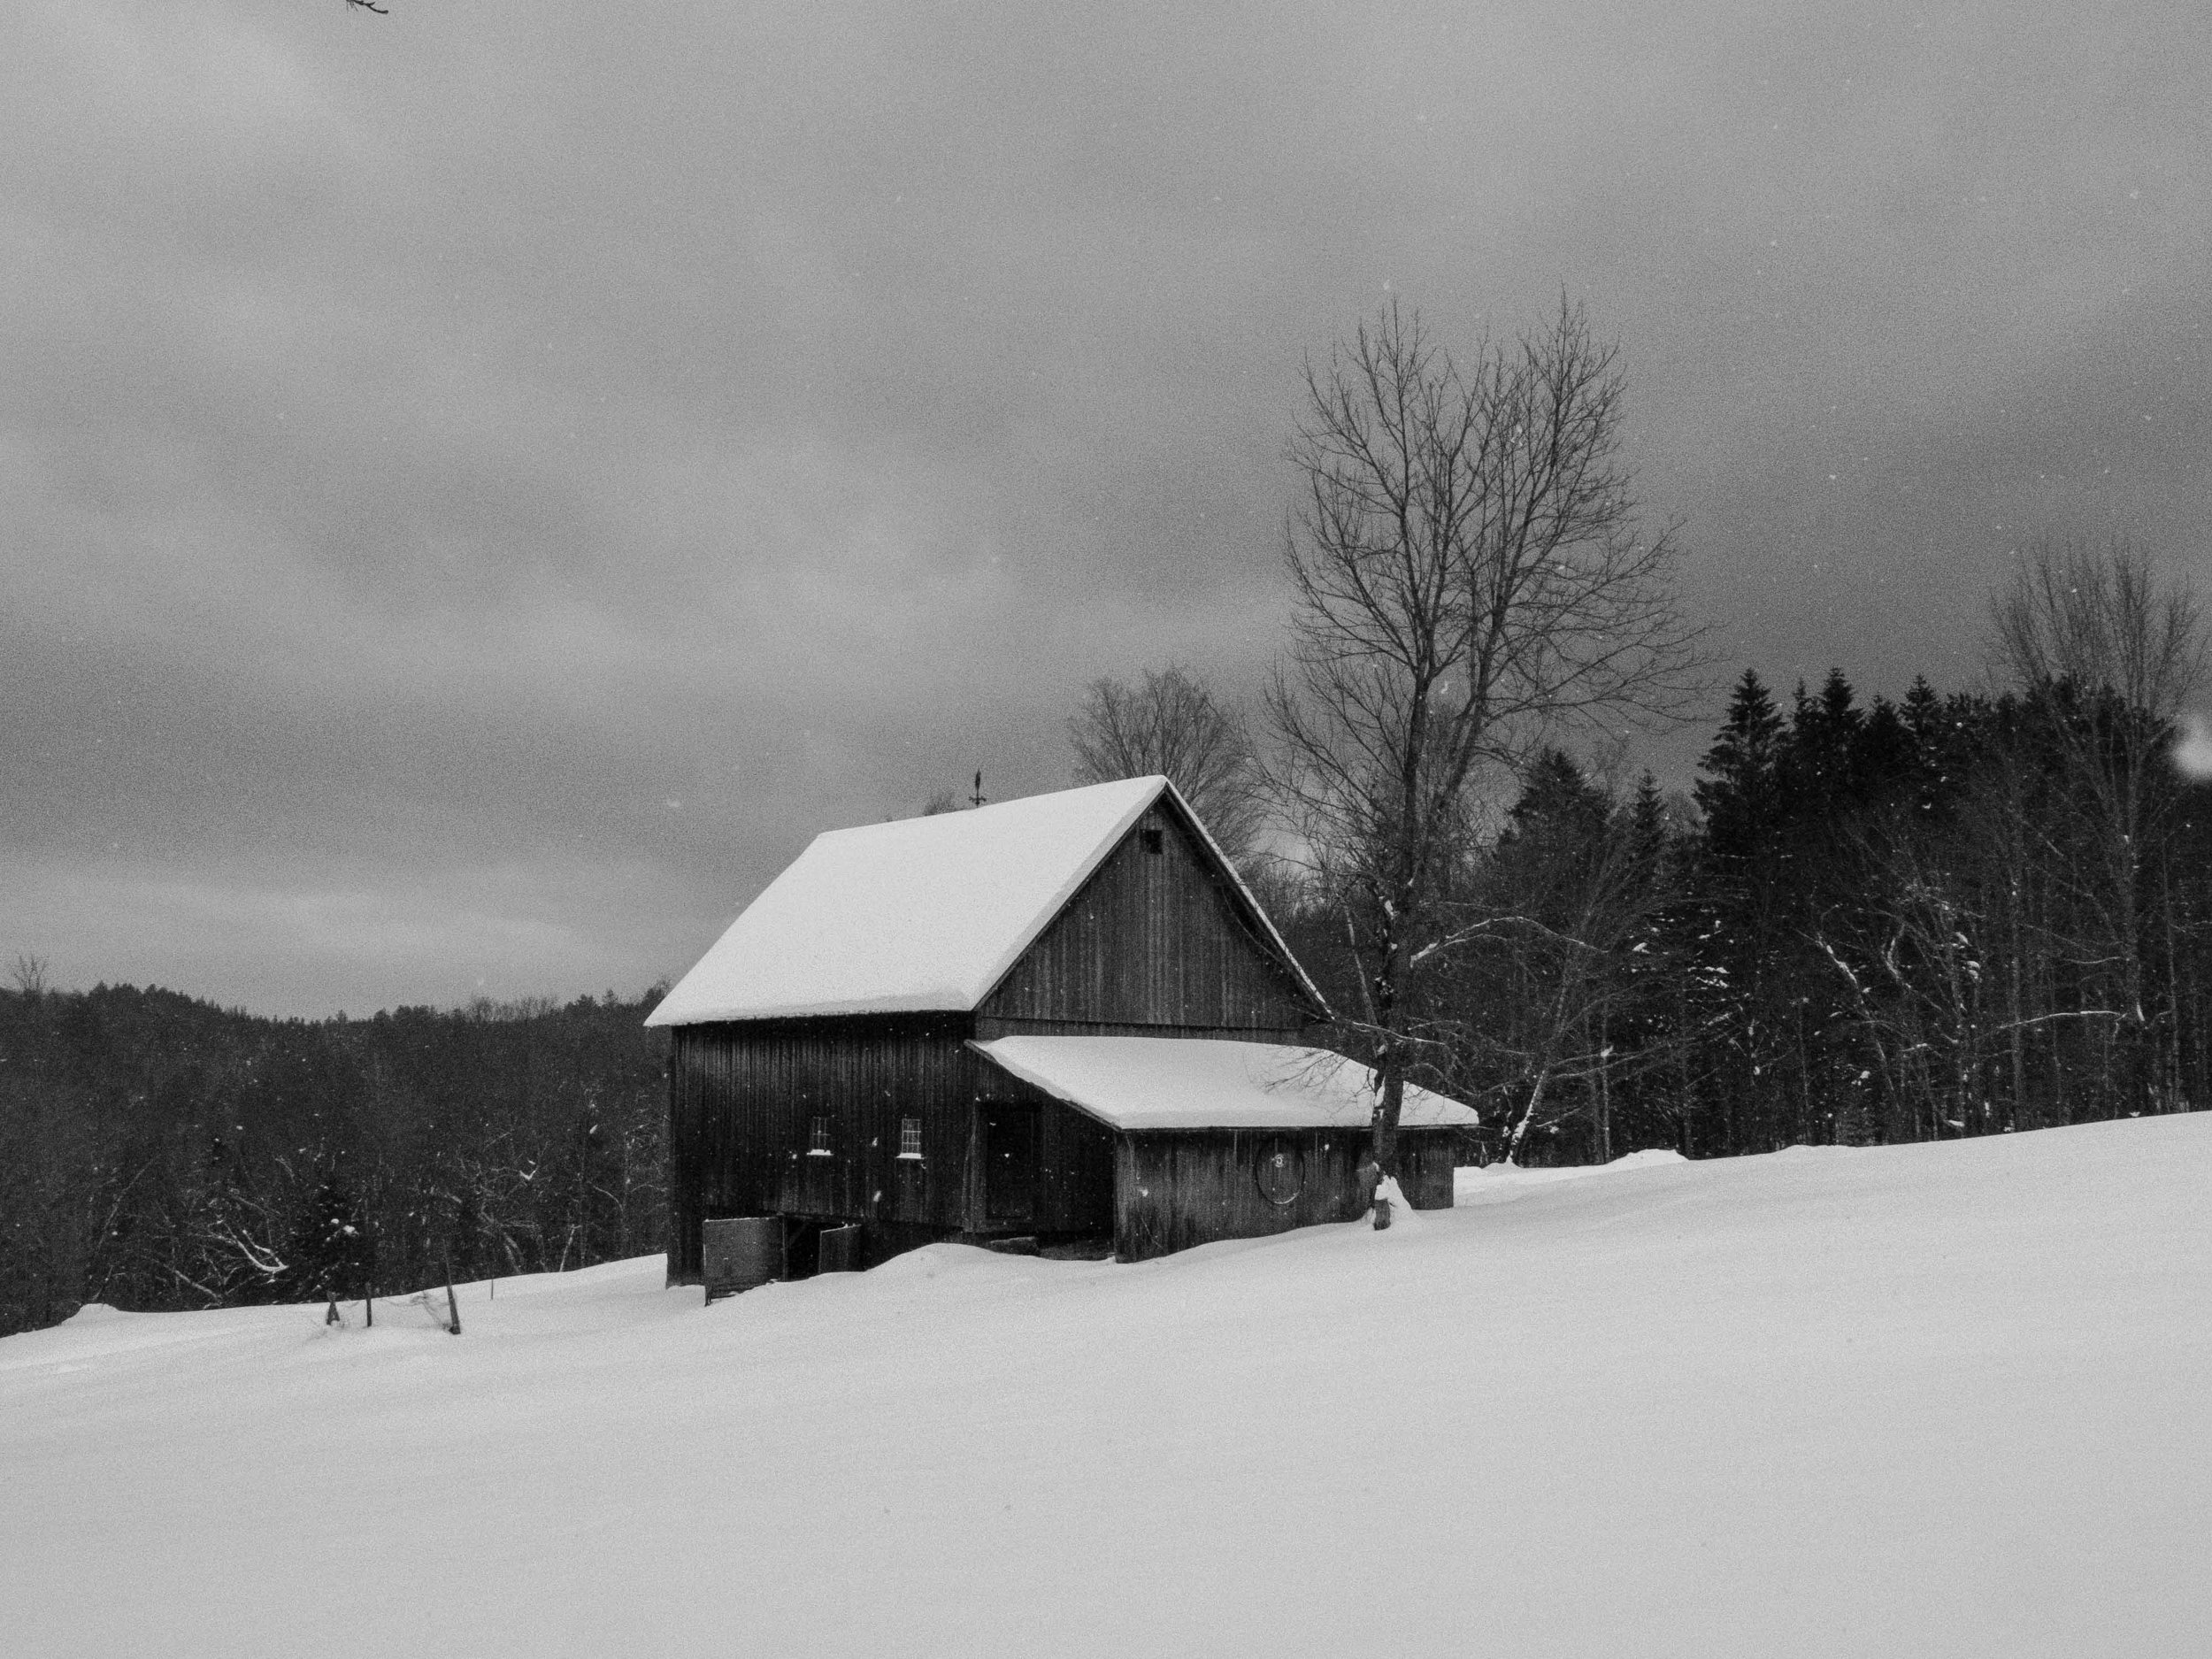 Just after this barn, you drop down into the woods and head Southeastish.